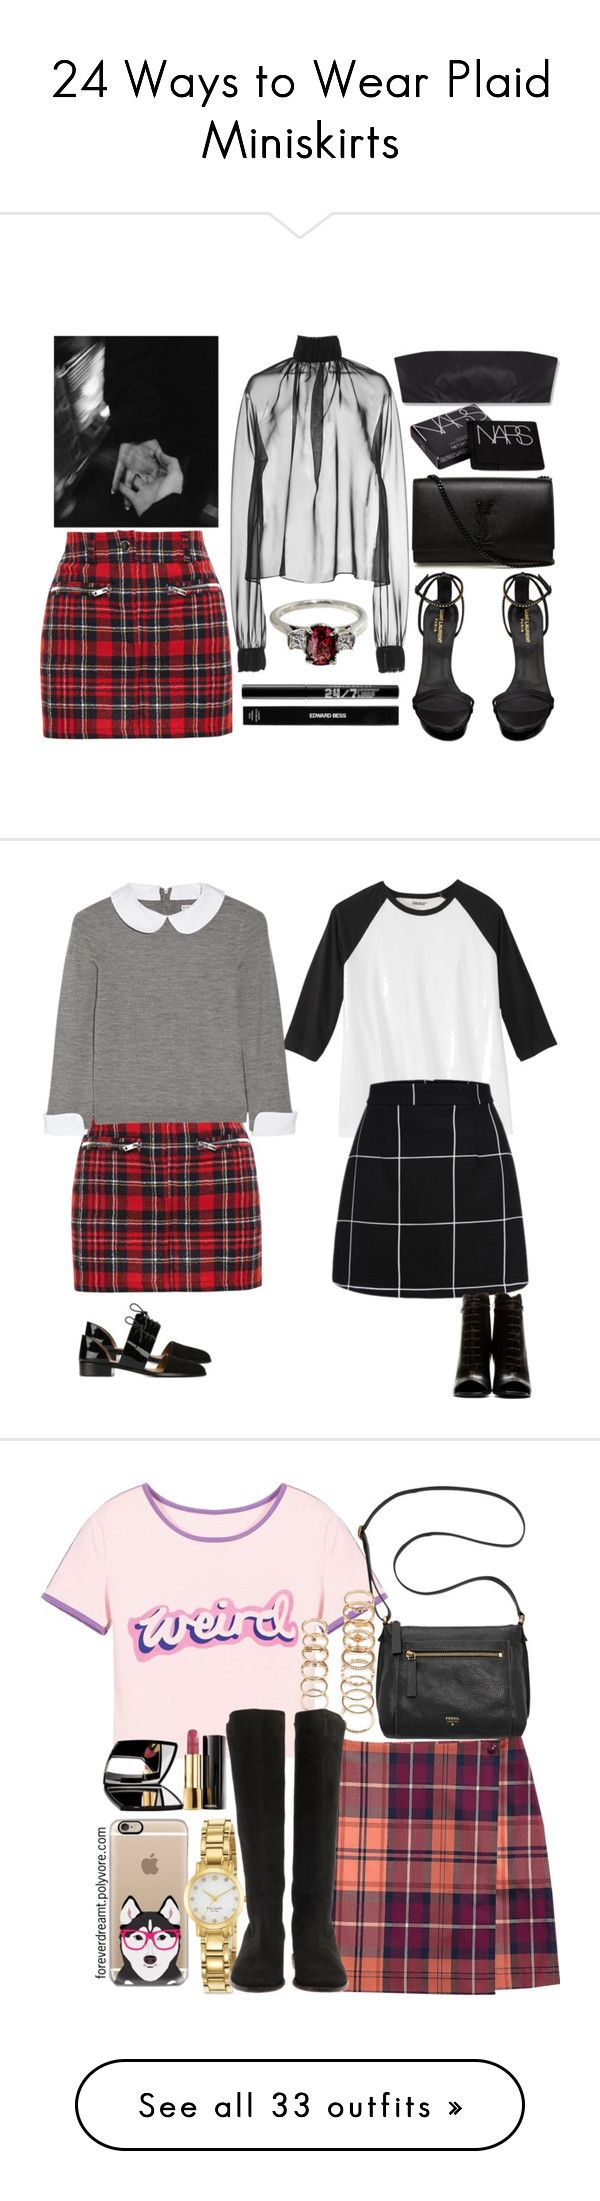 """""""24 Ways to Wear Plaid Miniskirts"""" by polyvore-editorial ❤ liked on Polyvore featuring waystowear, plaidminiskirt, Wes Gordon, Yves Saint Laurent, Filles à papa, NARS Cosmetics, Edward Bess, Emporio Armani, Alice + Olivia and skirts"""